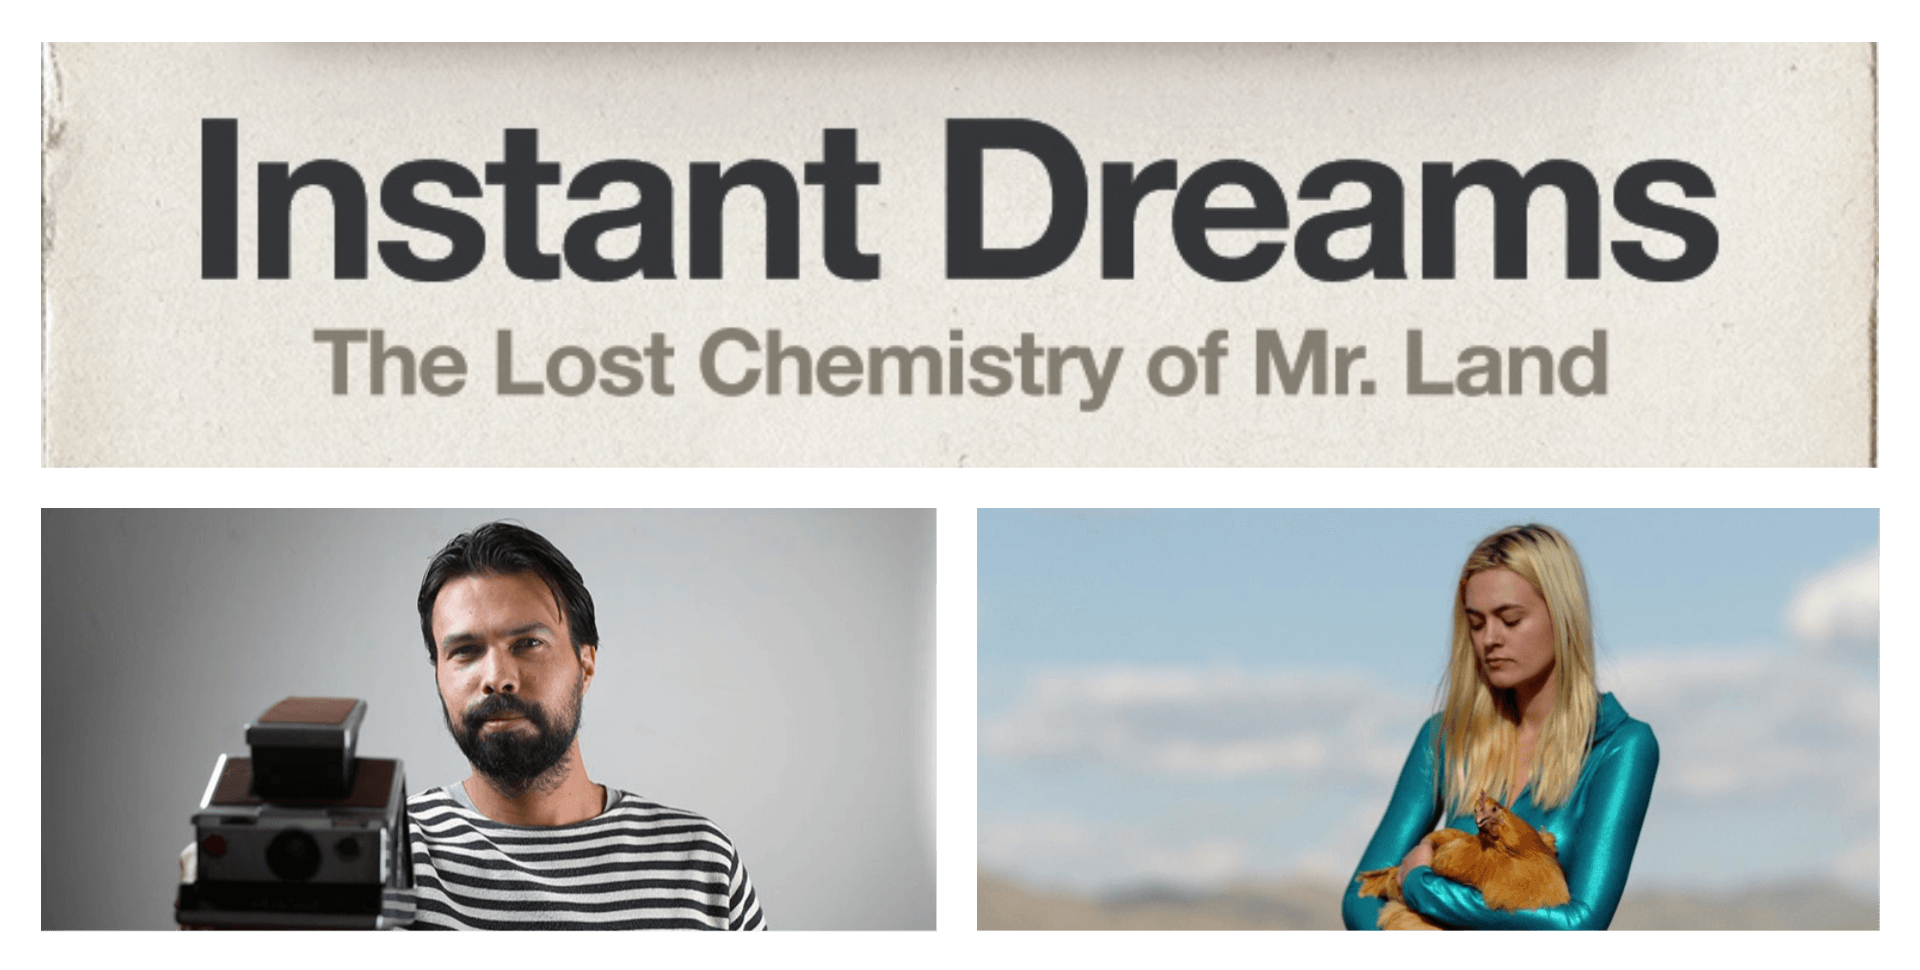 Interview with Willem Baptist 'Instant Dreams'